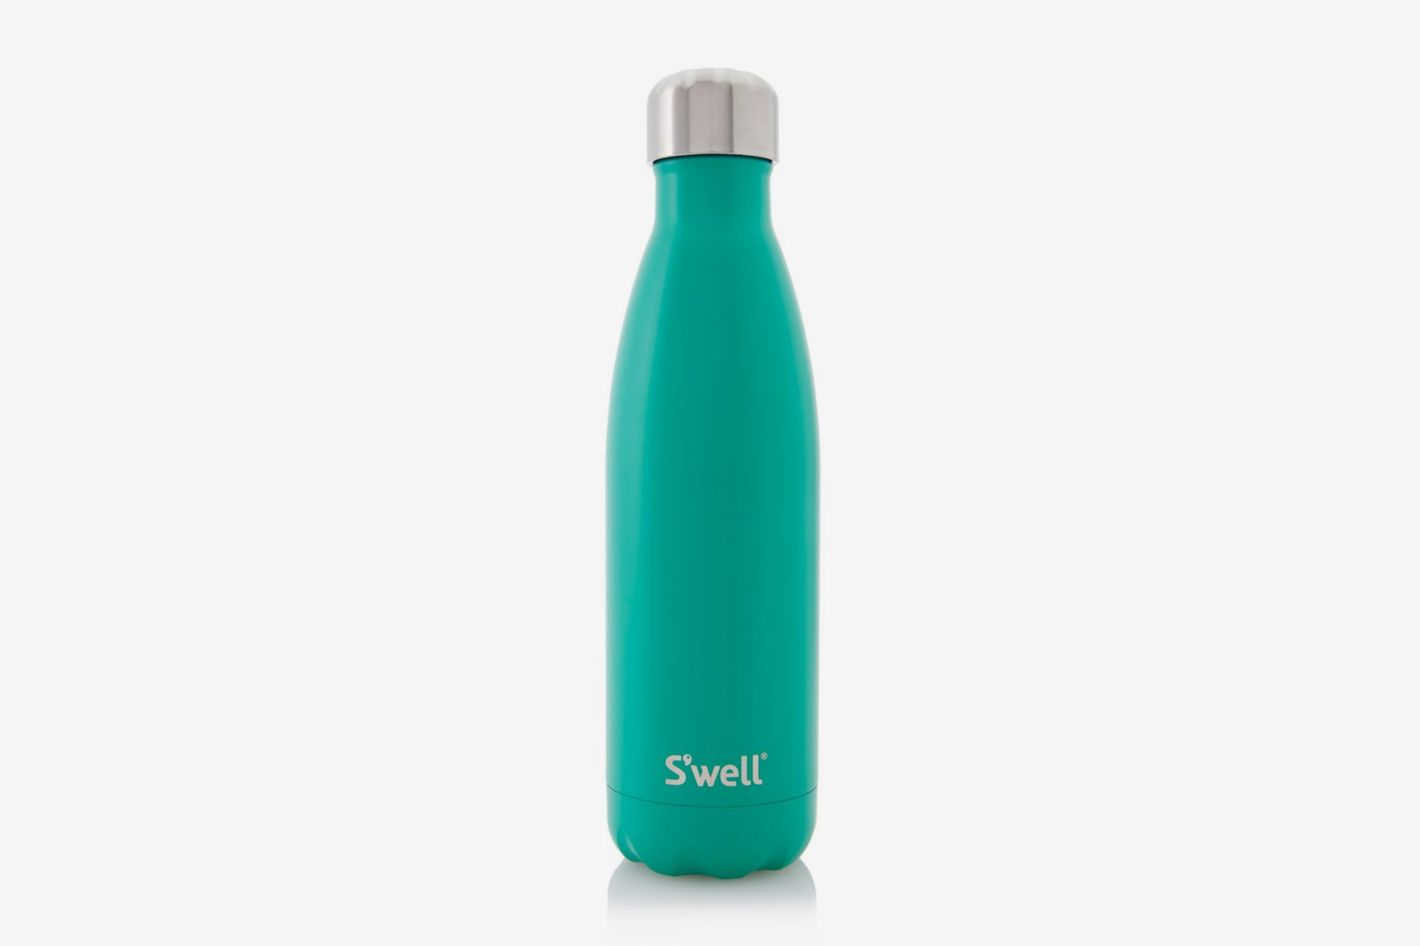 11 Best Water Bottles 2018: Stainless Steel, Reusable & More